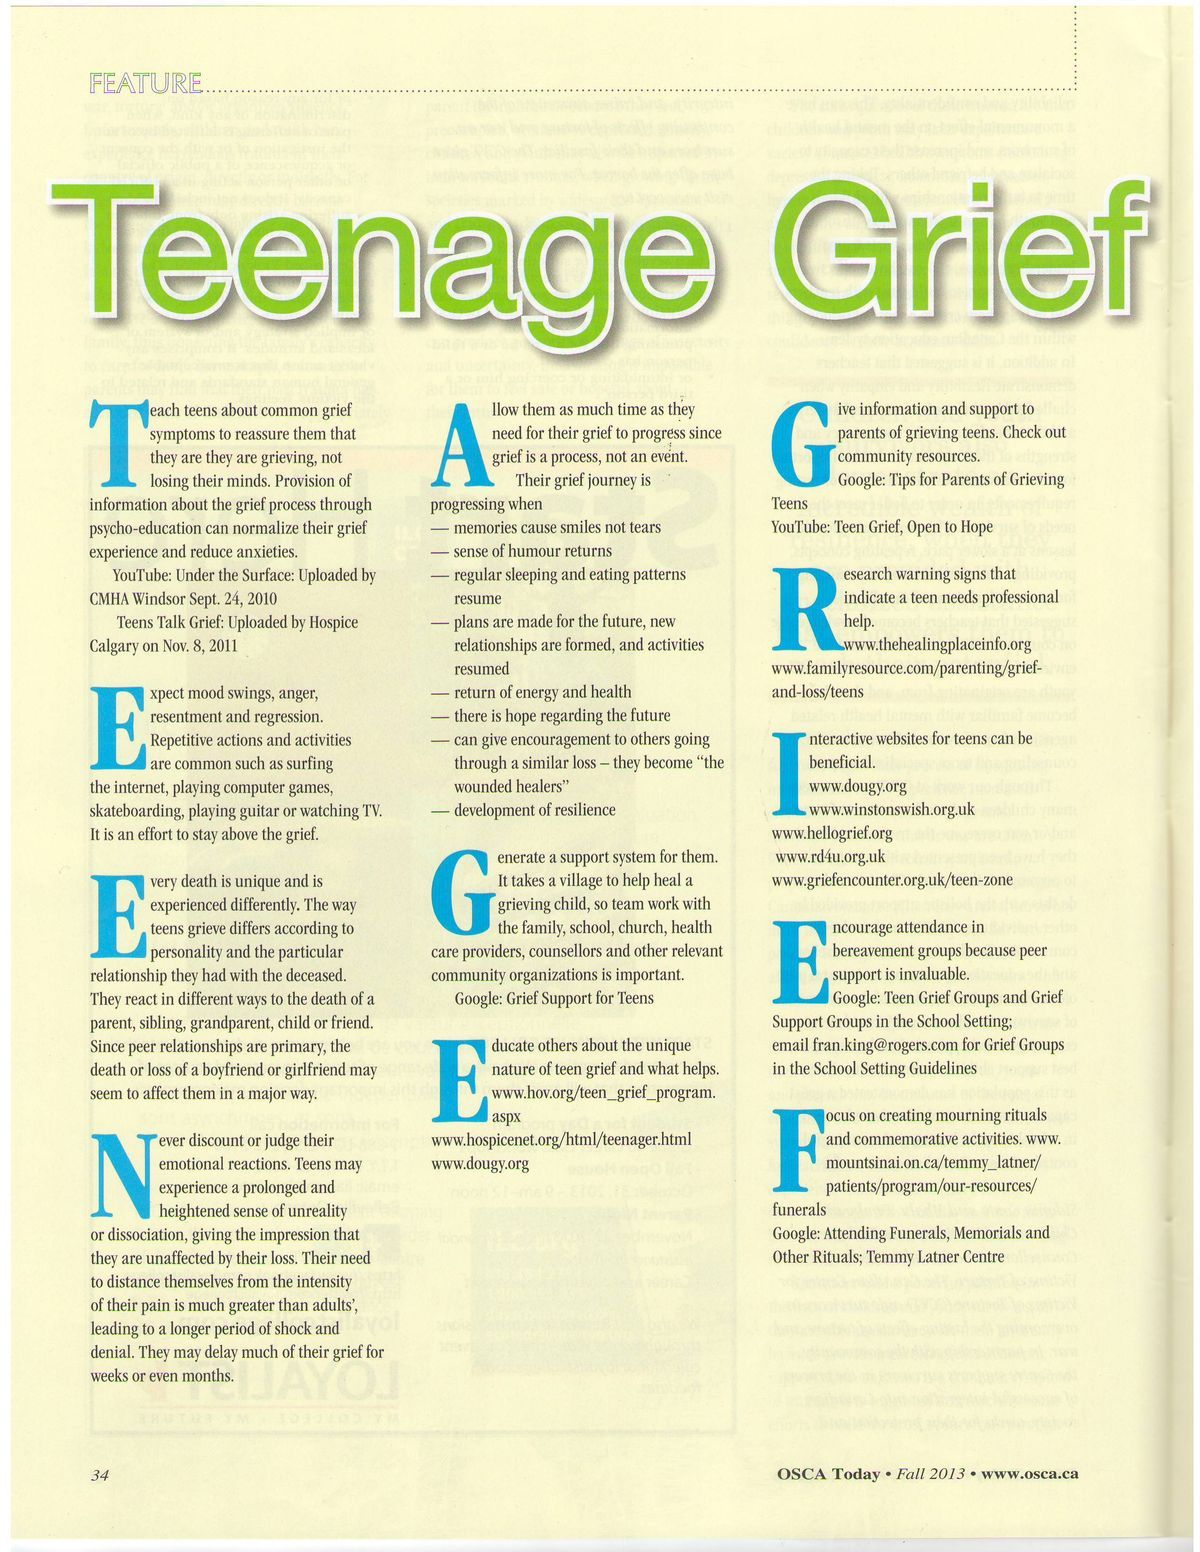 Teenage Grief